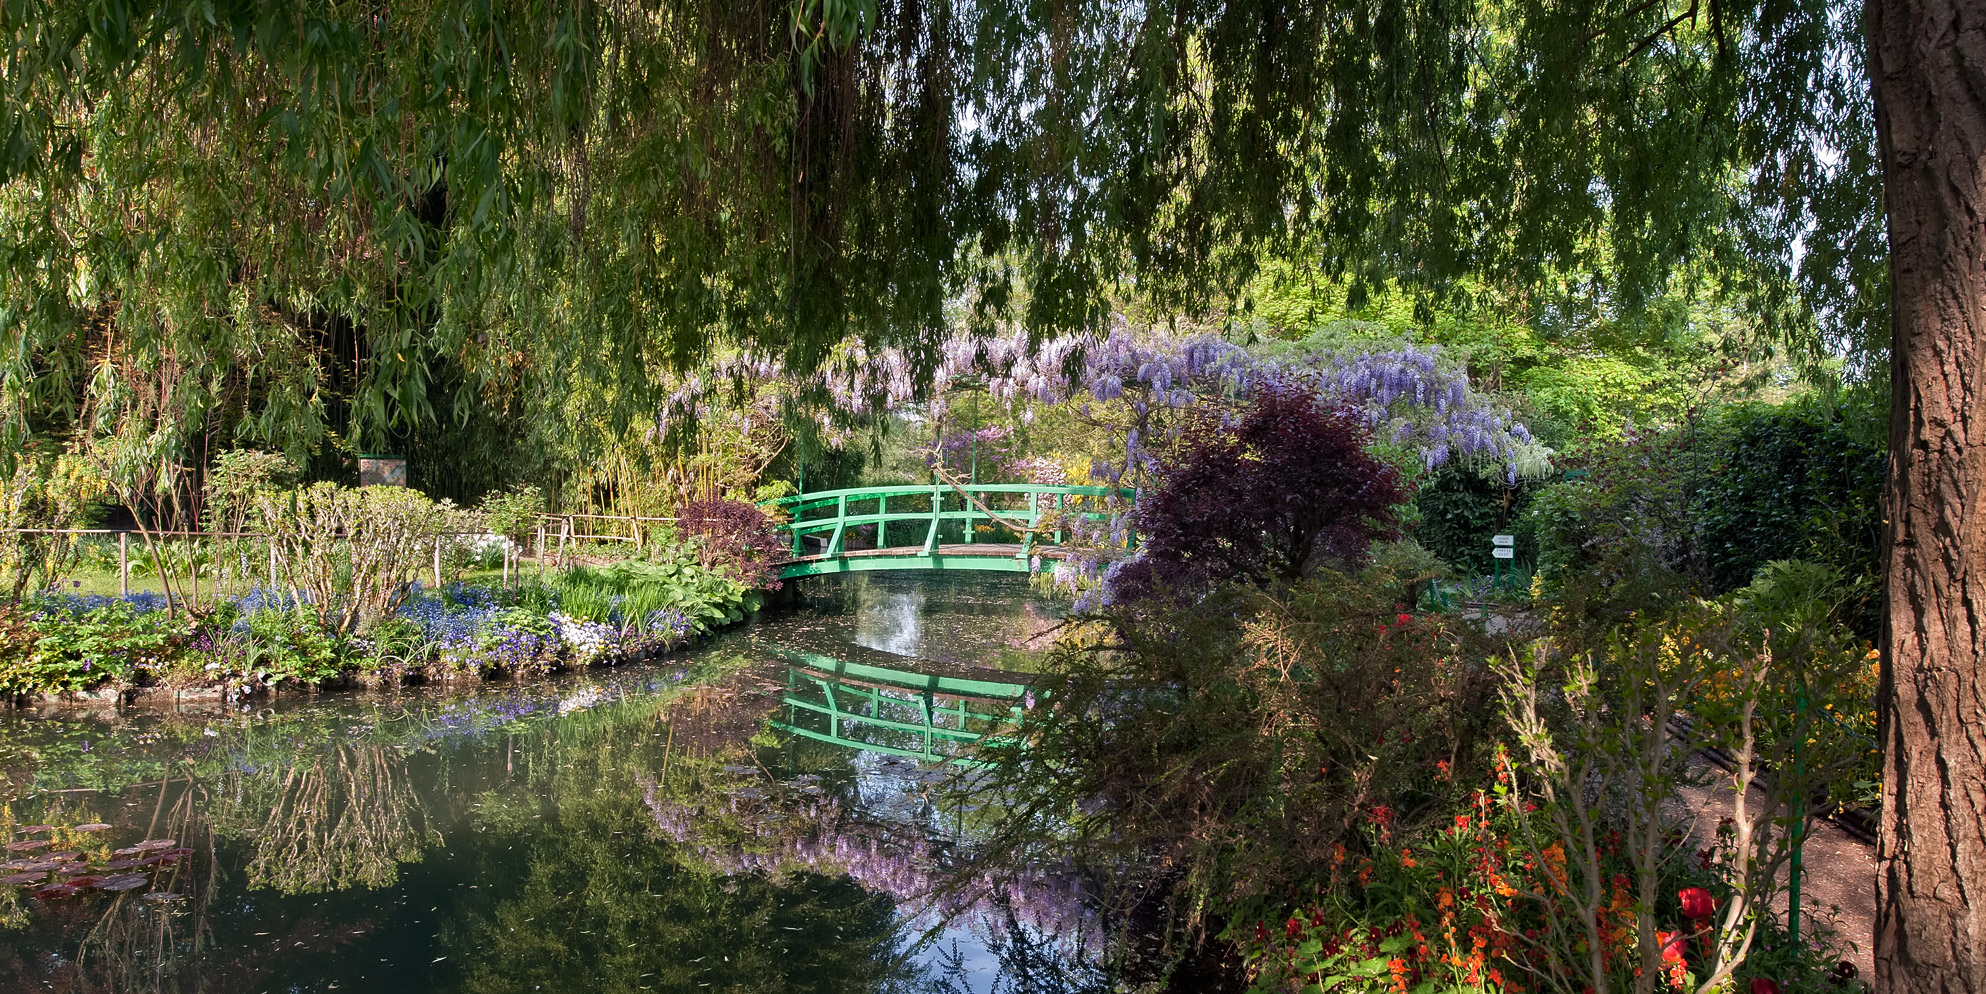 Fondation claude monet the water garden fondation claude monet - Jardin de maison argenteuil ...